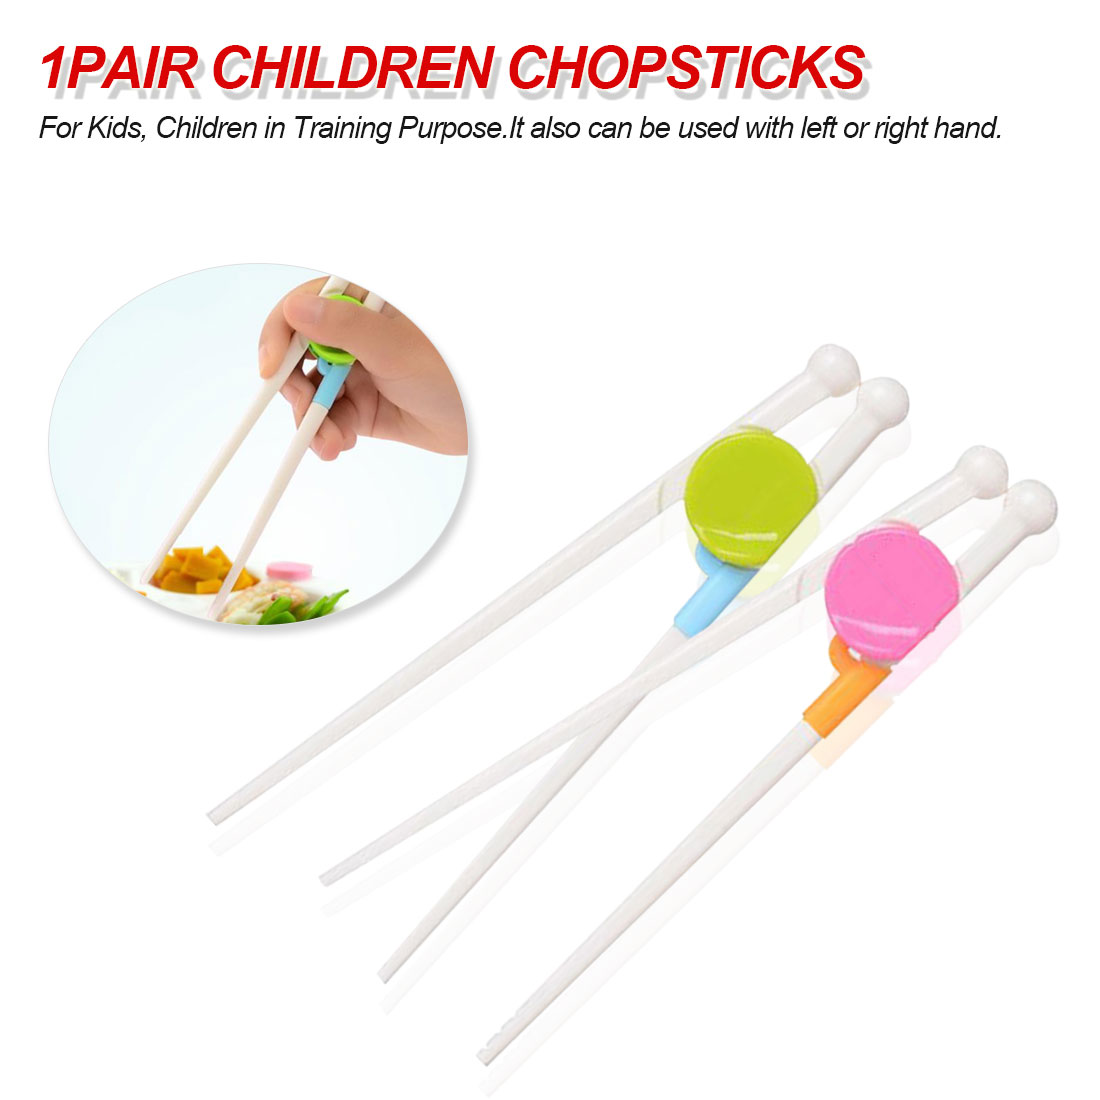 1 Pair Chopsticks For Sushi Baby Kids Cartoon Food Sticks Easy Use Fun Learning Training Helper Dishes Dinner Game Kitchen Tools